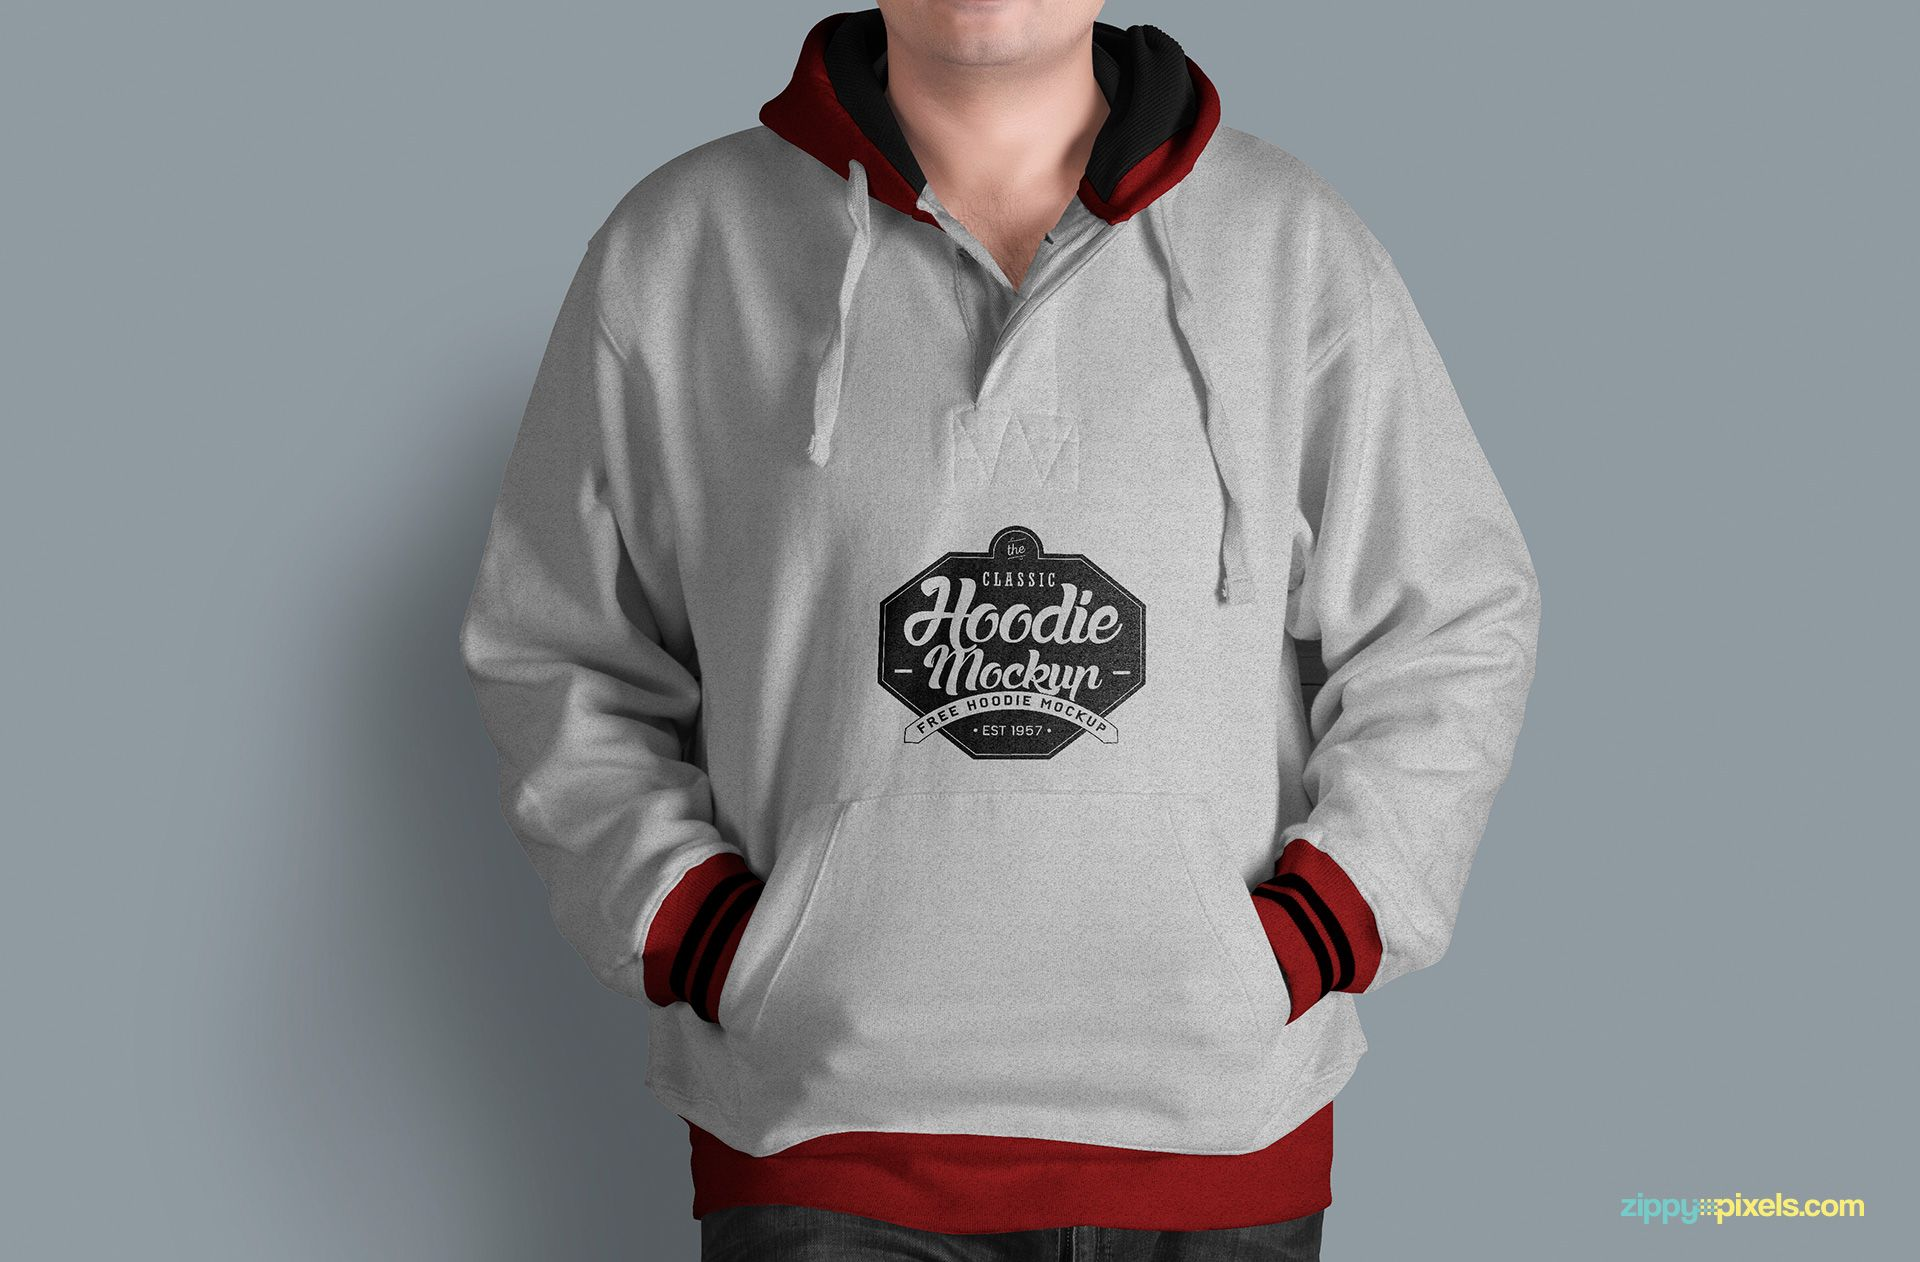 Download Hoodie Mockup Free Psd Download Zippypixels Hoodie Mockup Hoodie Mockup Free Clothing Mockup